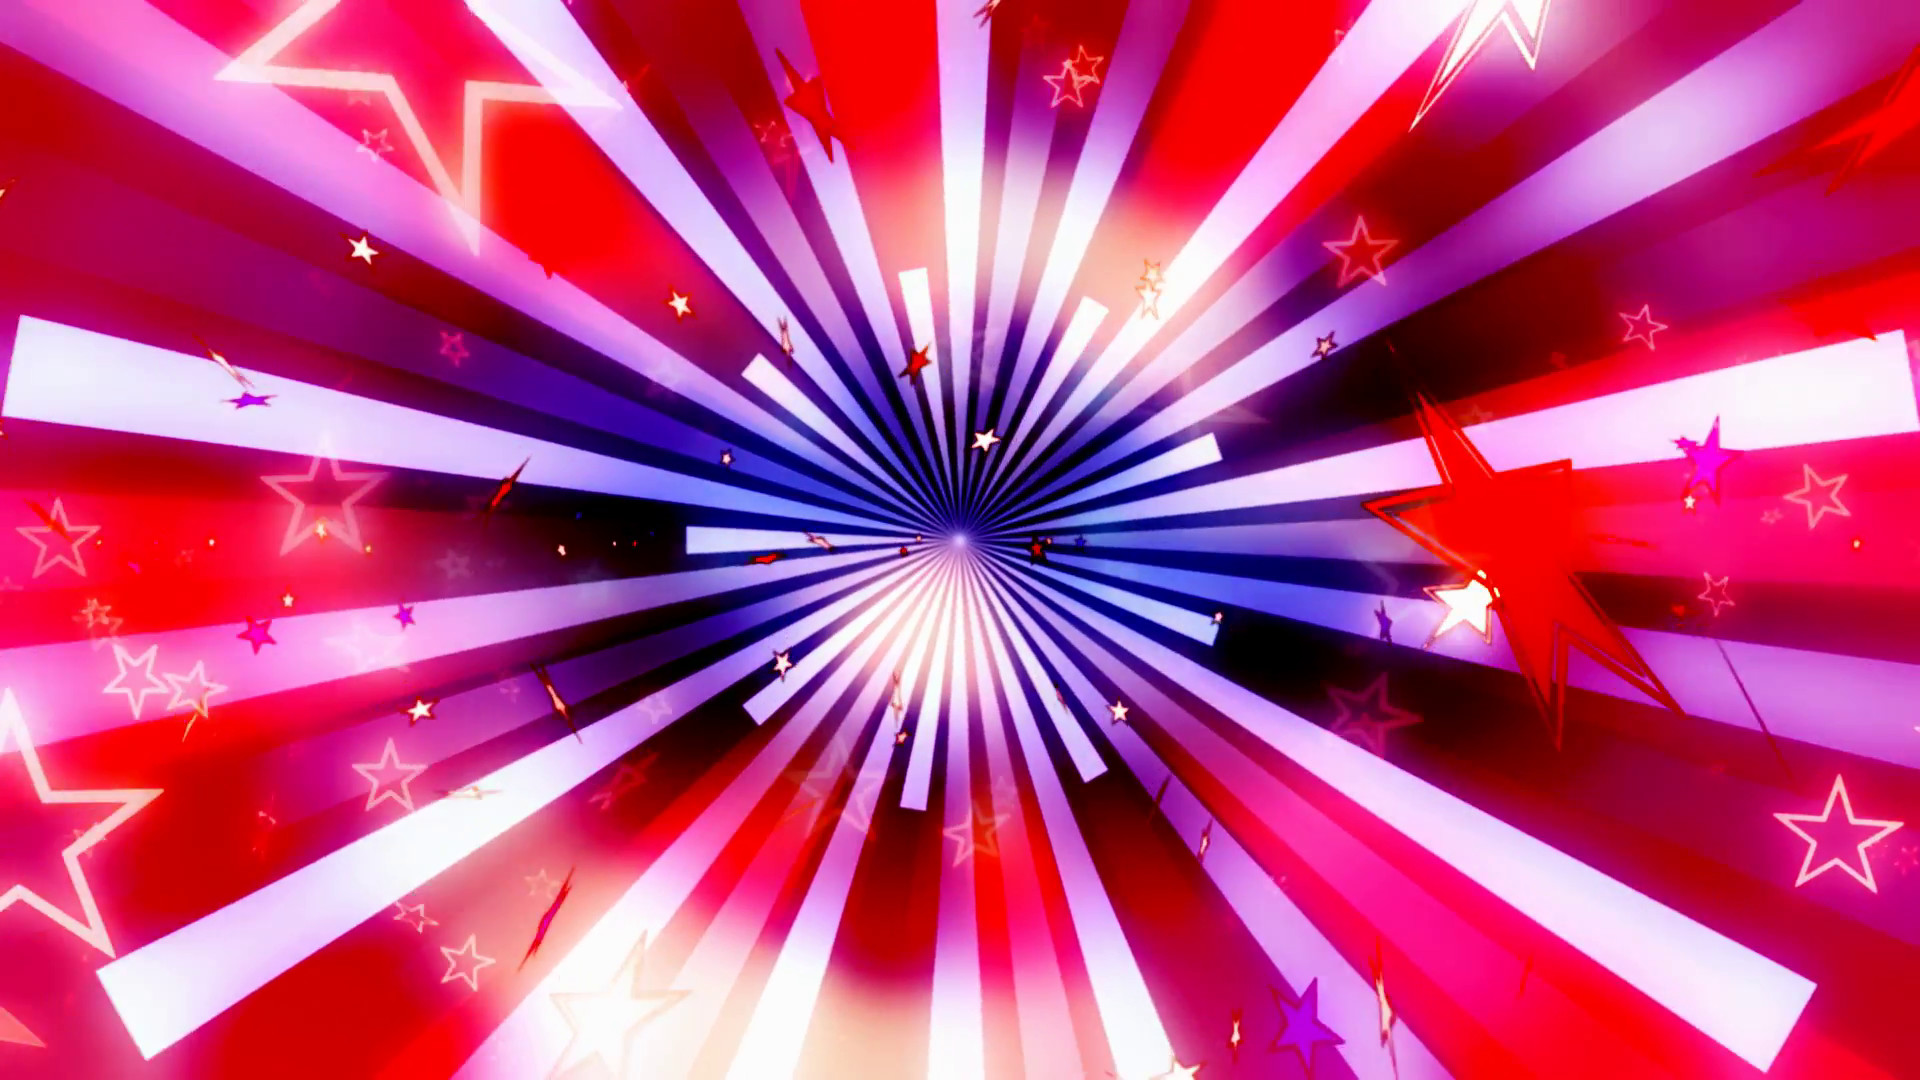 Red White and Blue Backgrounds ·① - photo#48